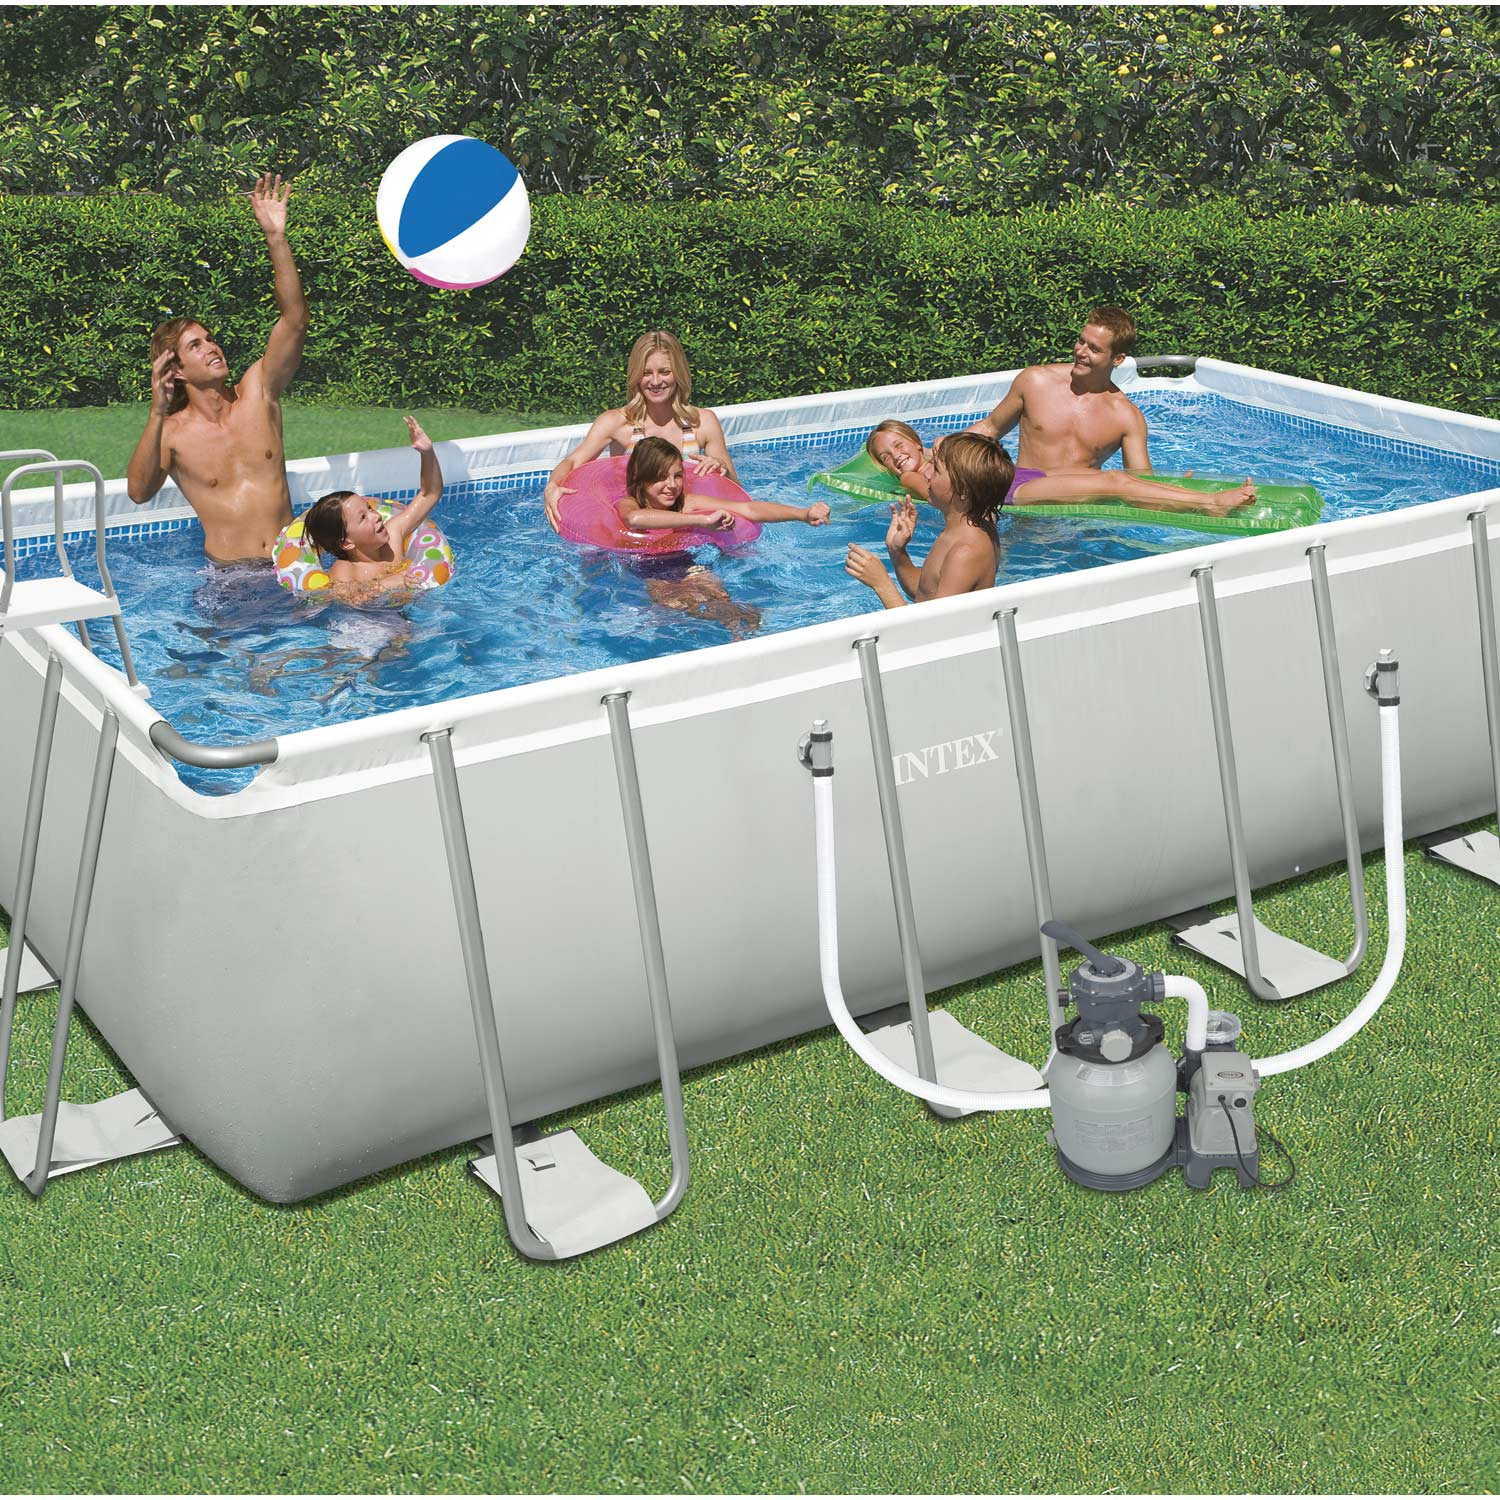 Piscine hors sol autoportante tubulaire ultra silver intex for Piscine hors sol plastique